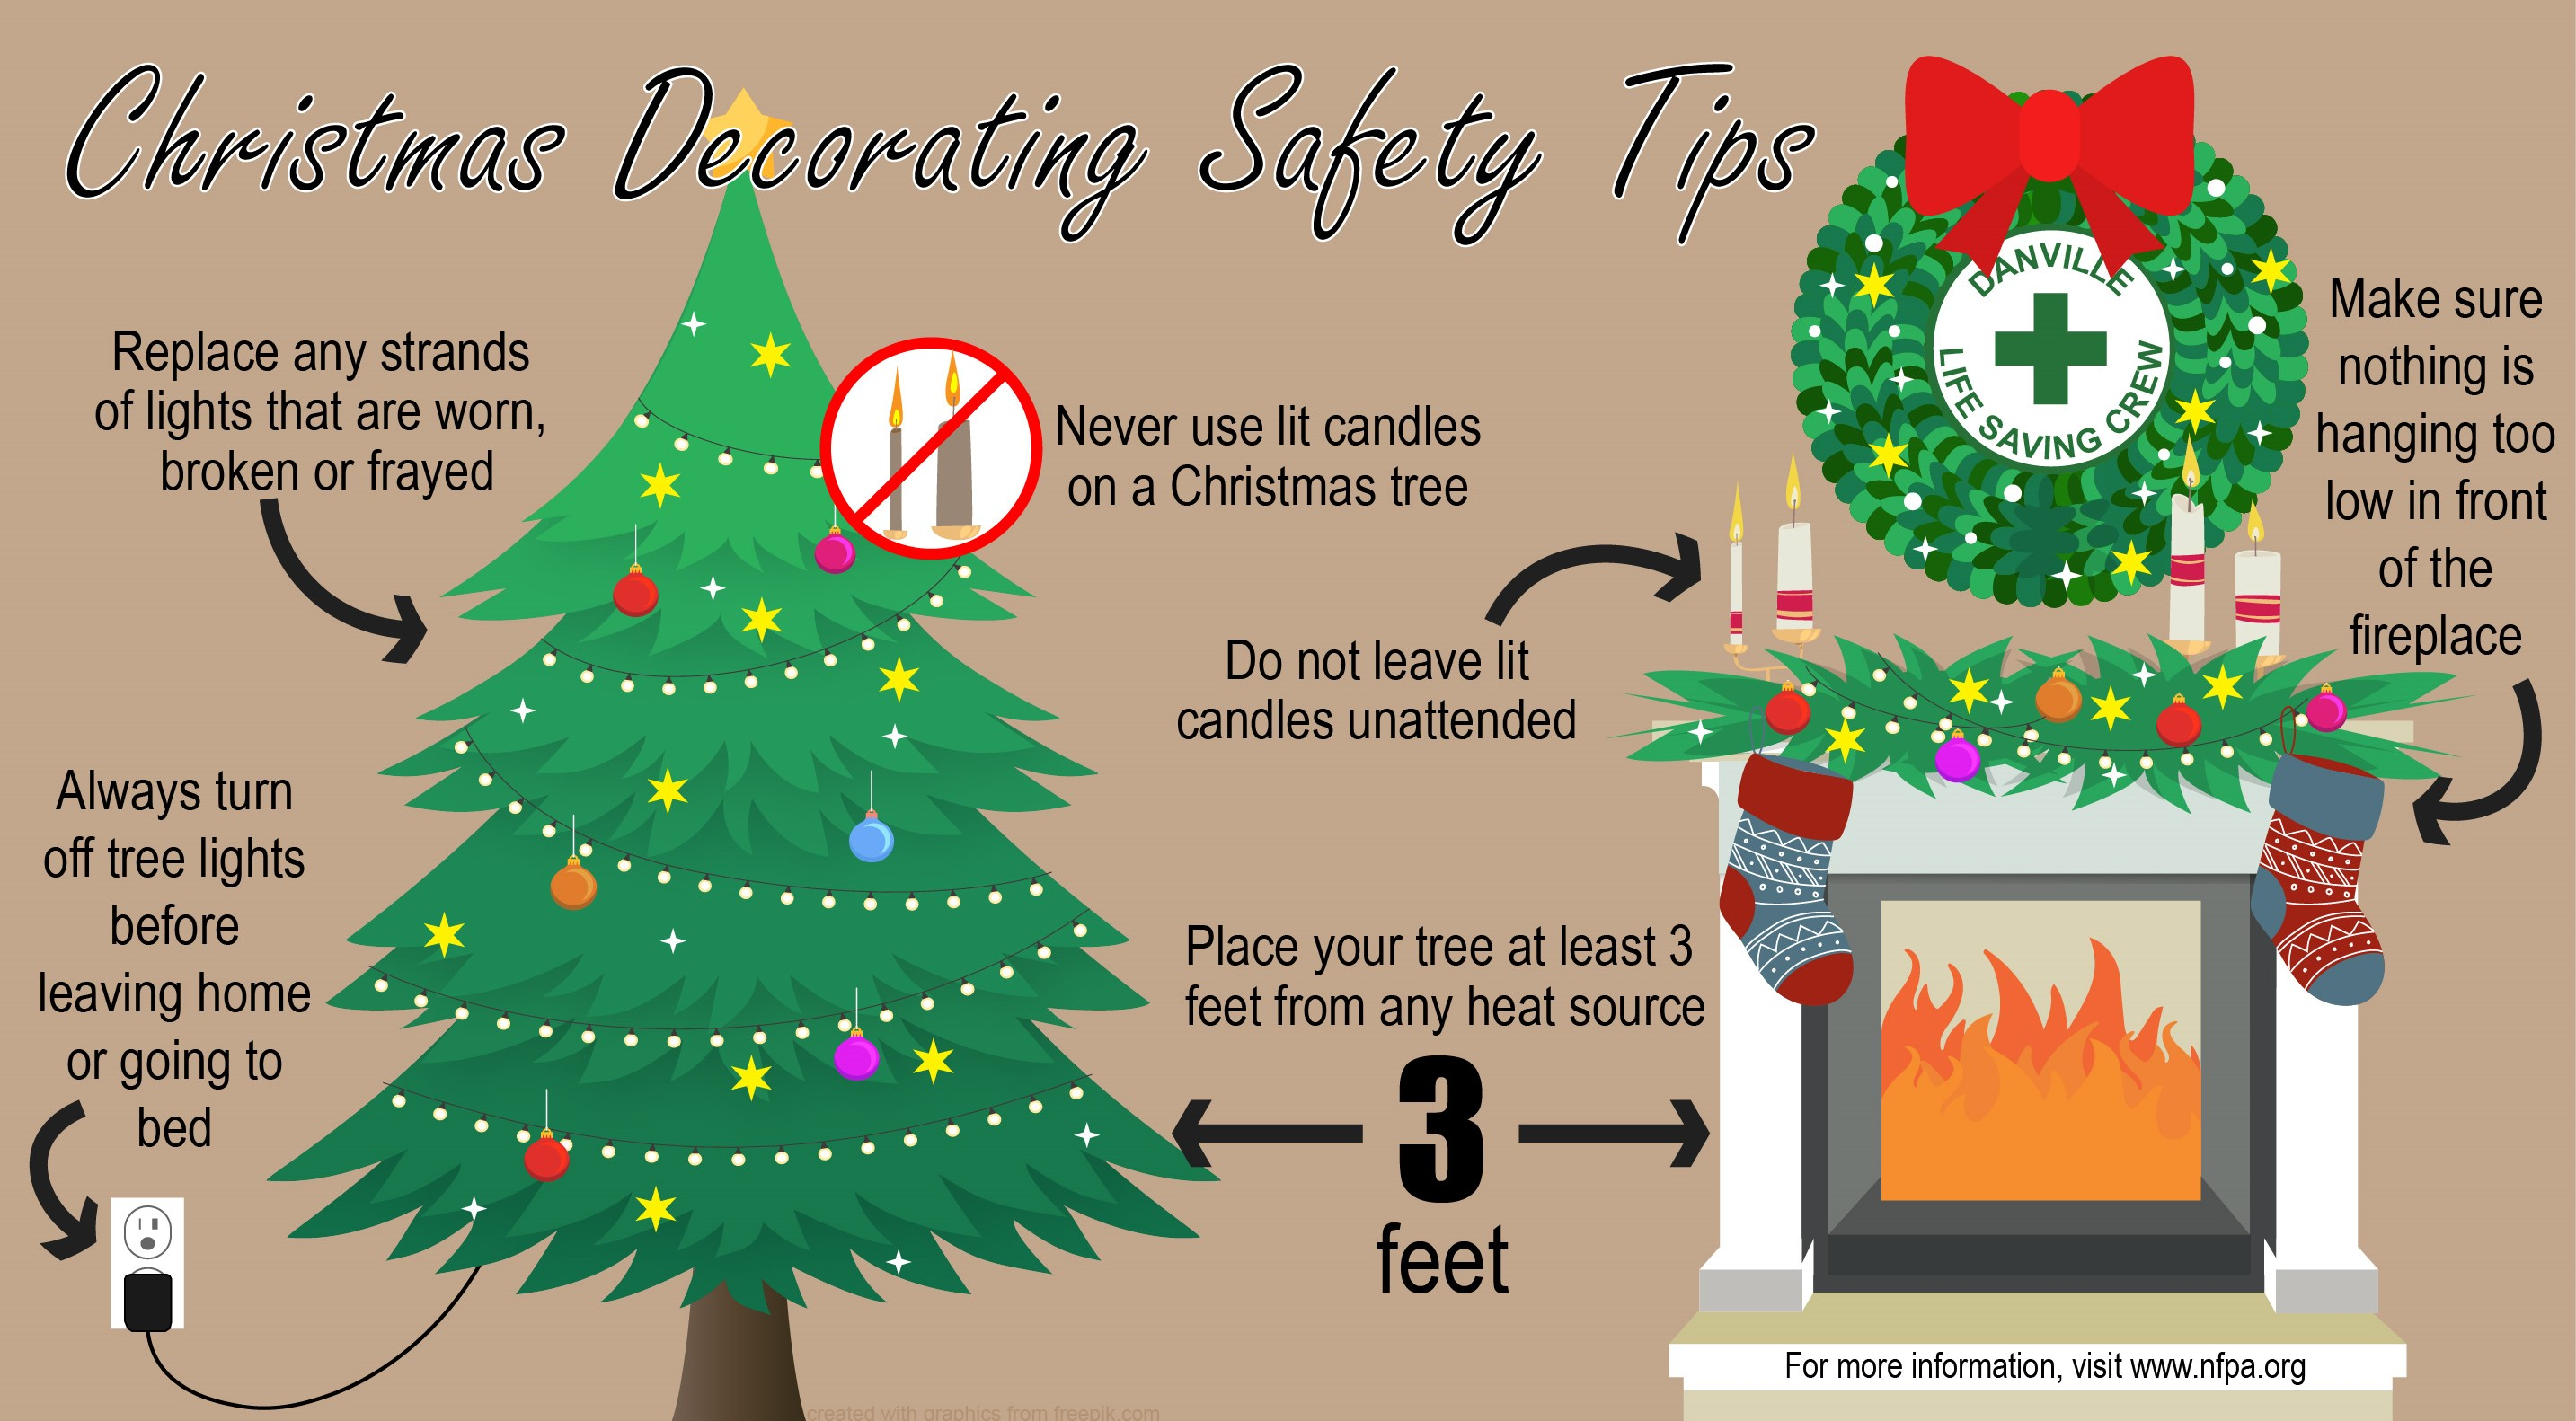 picture How to Decorate Safely for the Holiday Season